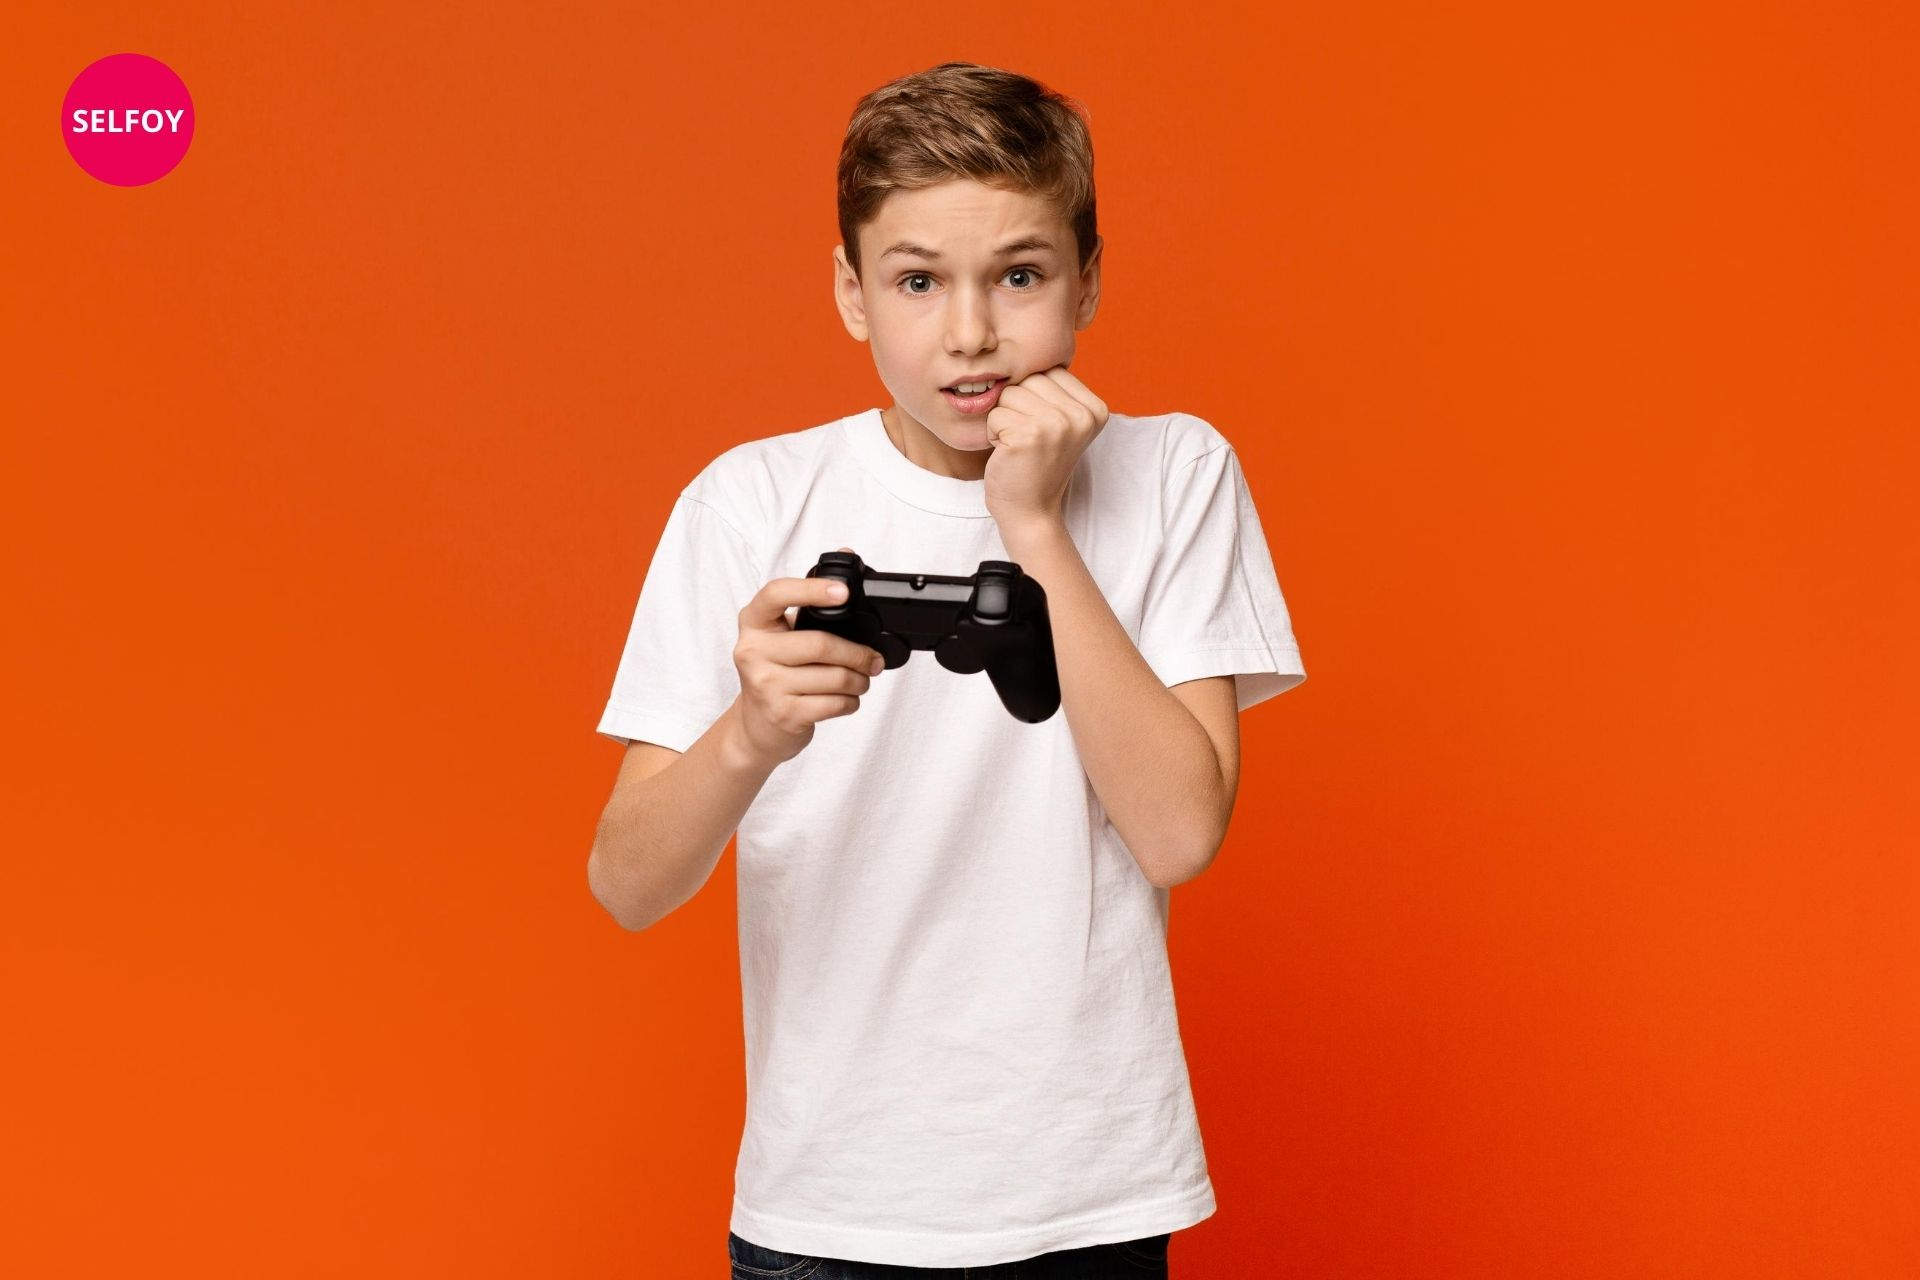 Boy has remote control of video game in hand and looks fearing and depicts low self esteem